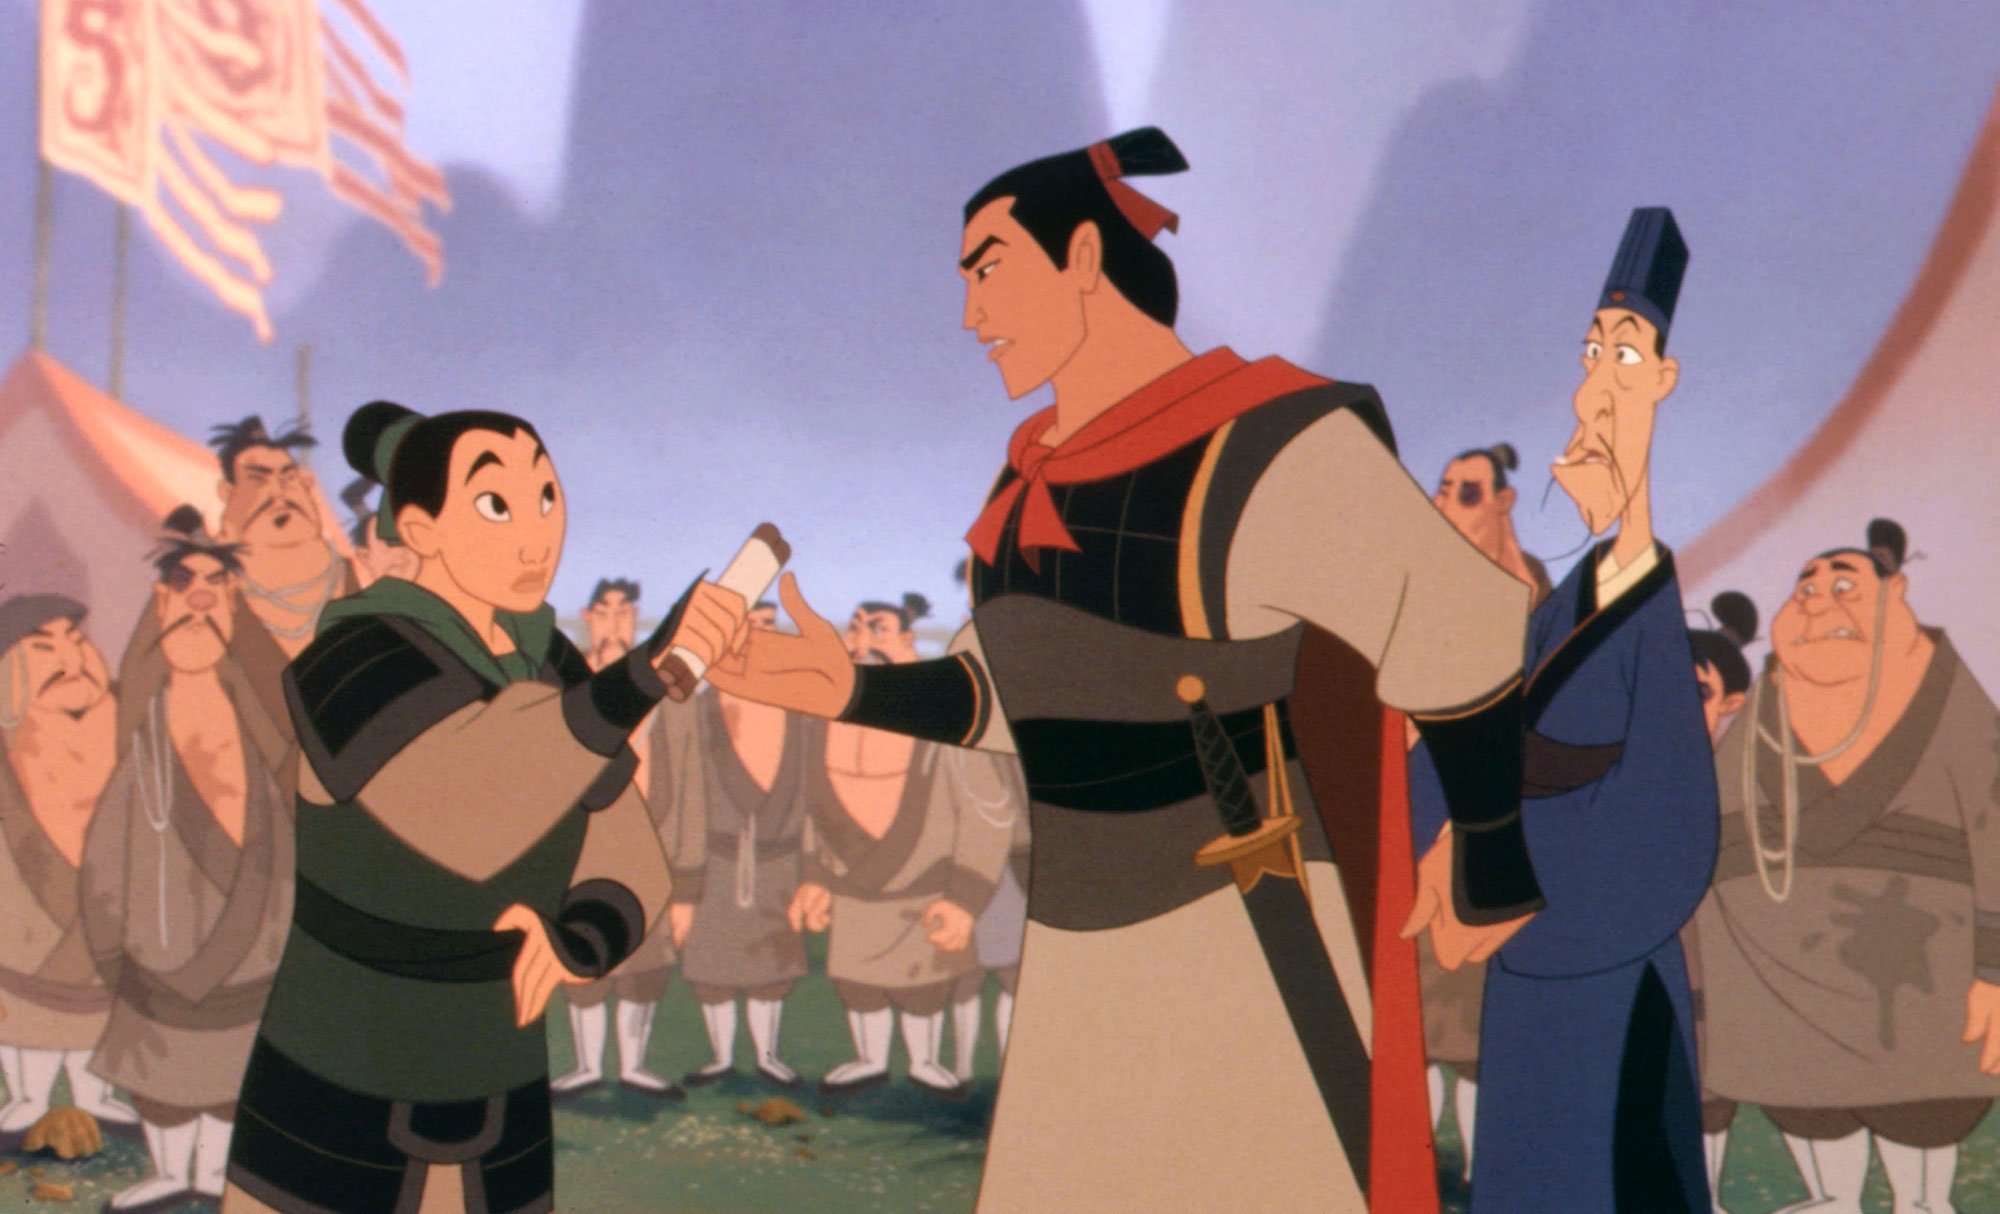 Here S Why Li Shang Won T Be In The Mulan Live Action Movie